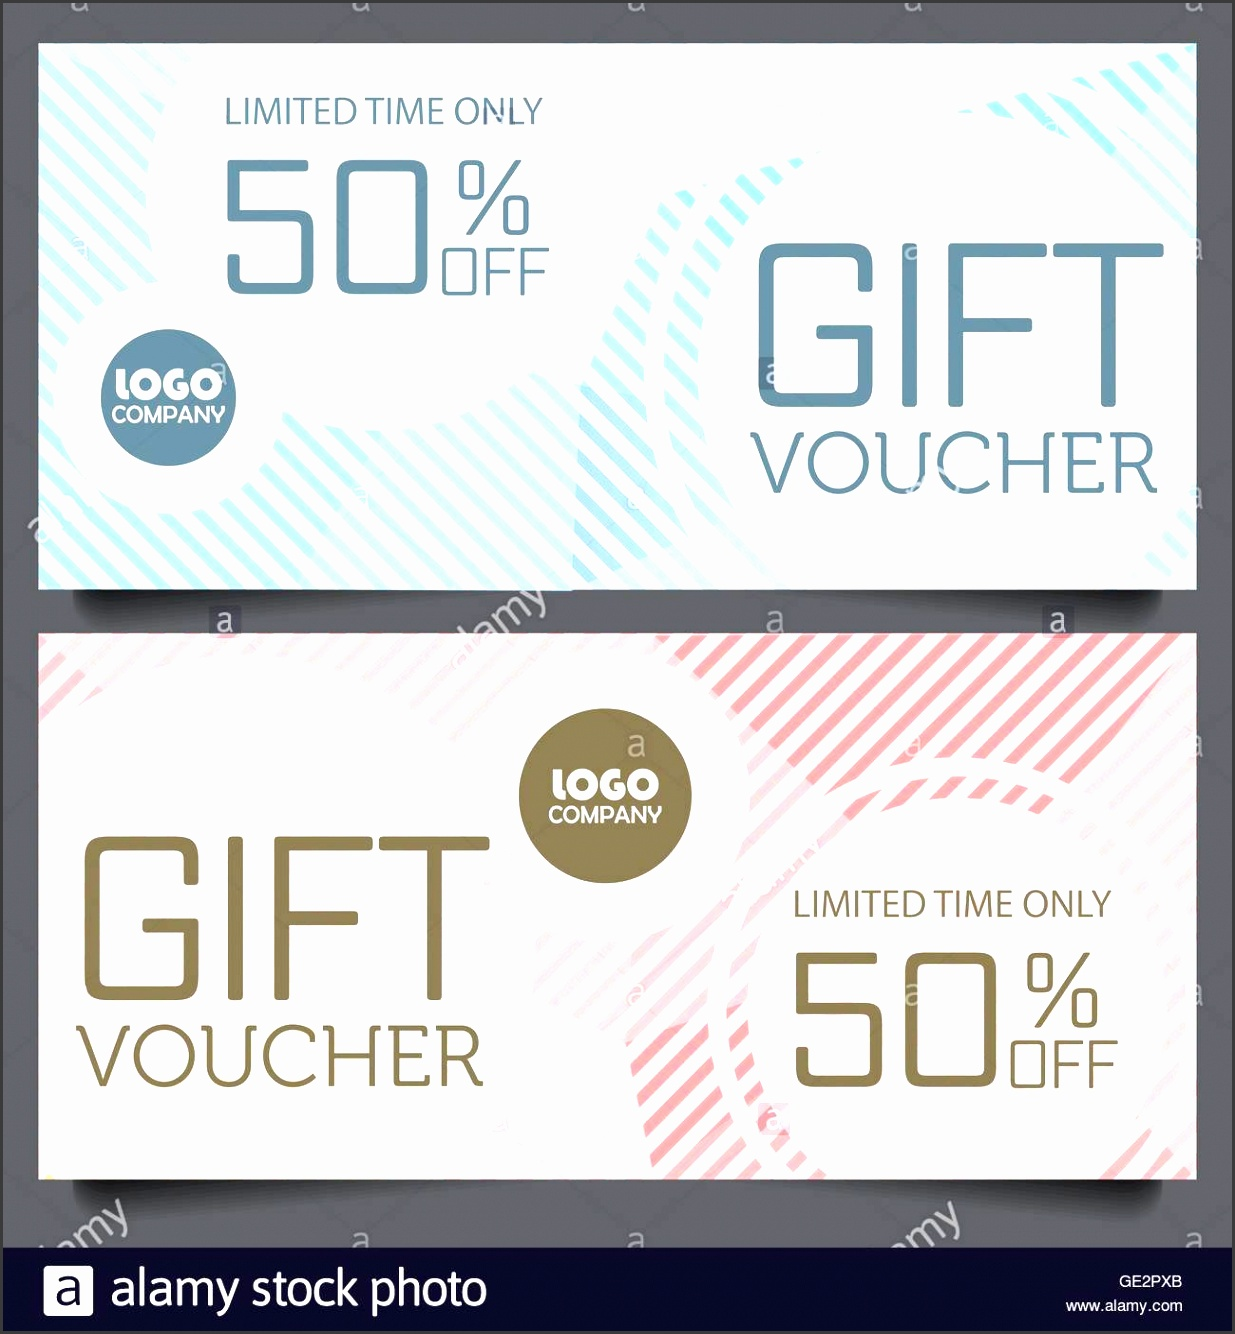 t voucher certificate coupon template cute and modern style design for girl and woman can be use for business shopping card